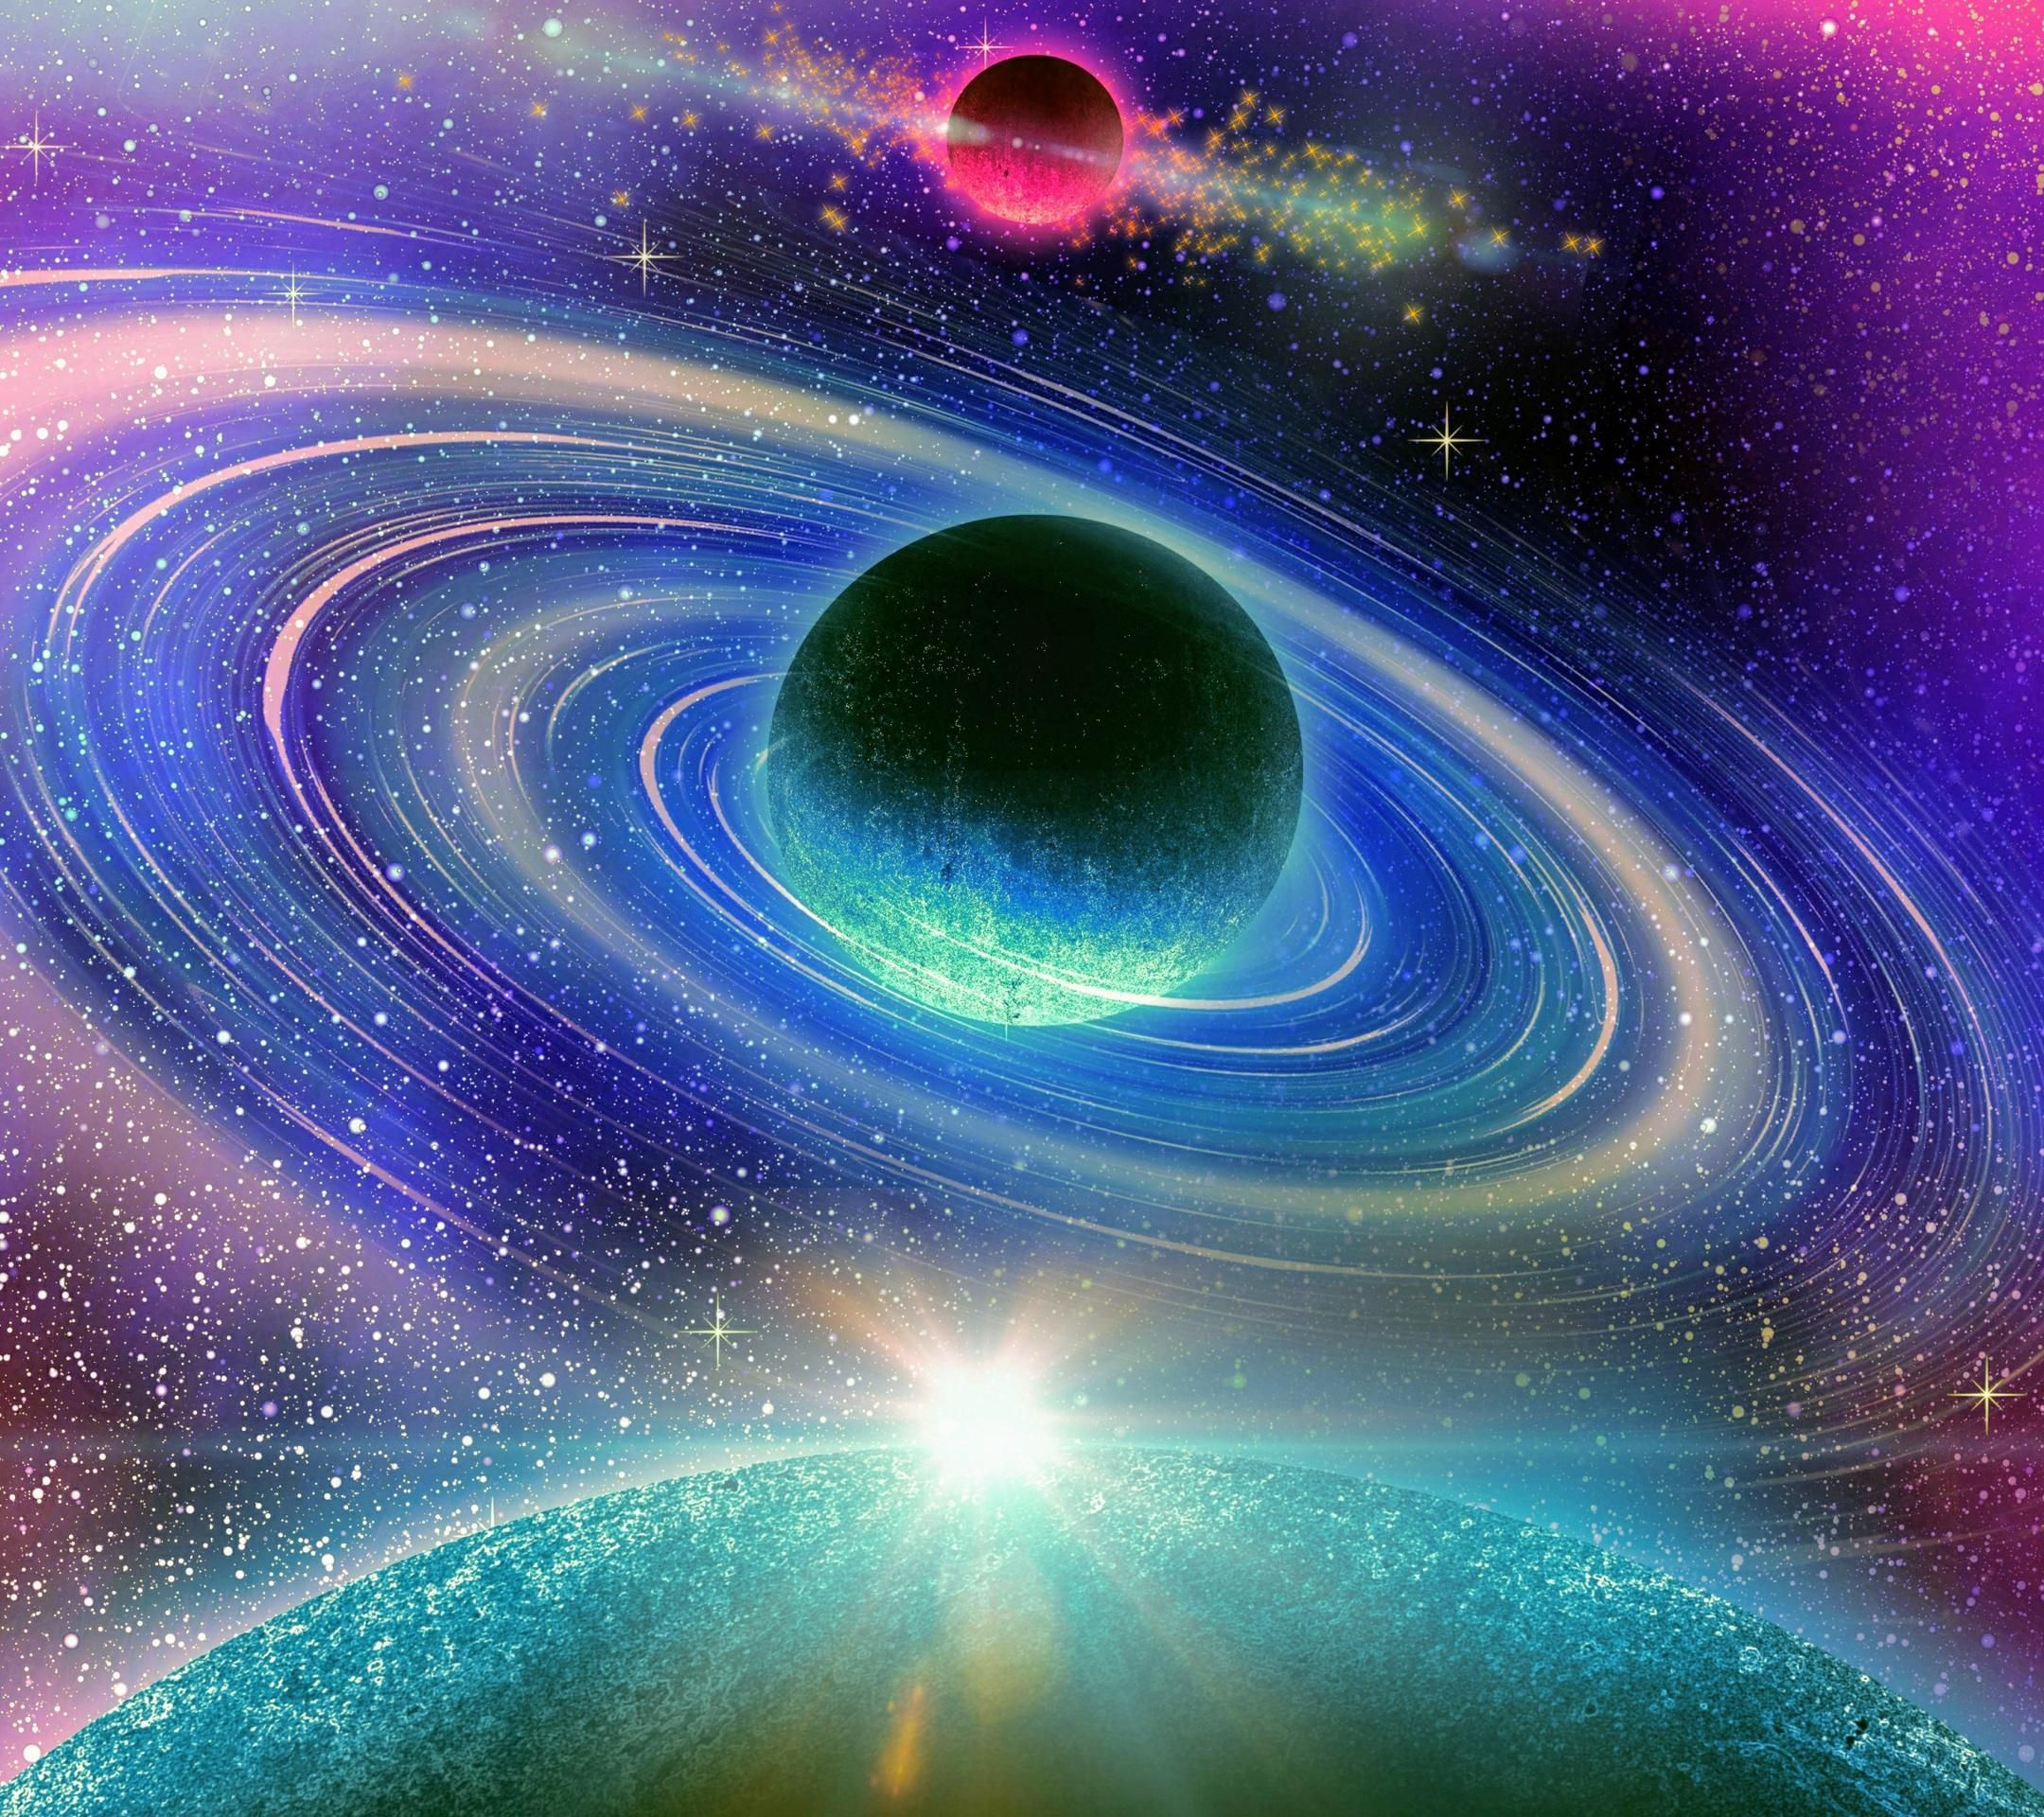 Deep Space Cool Galaxy Wallpapers Cute Wallpapers For Computer Galaxy Wallpaper